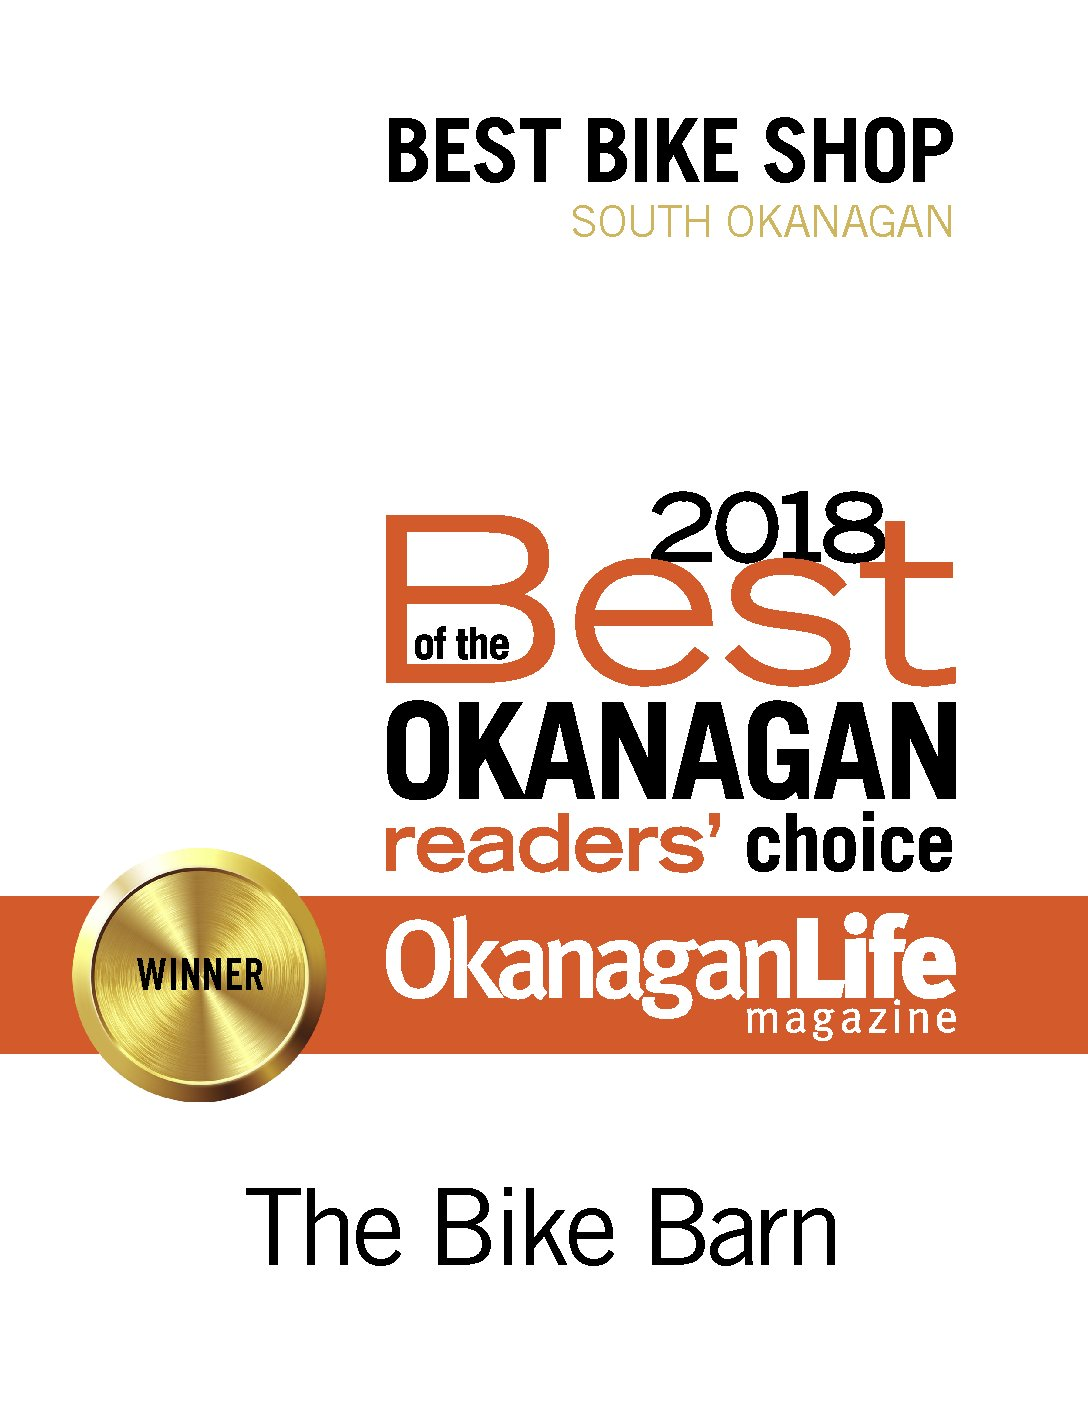 The Bike Barn